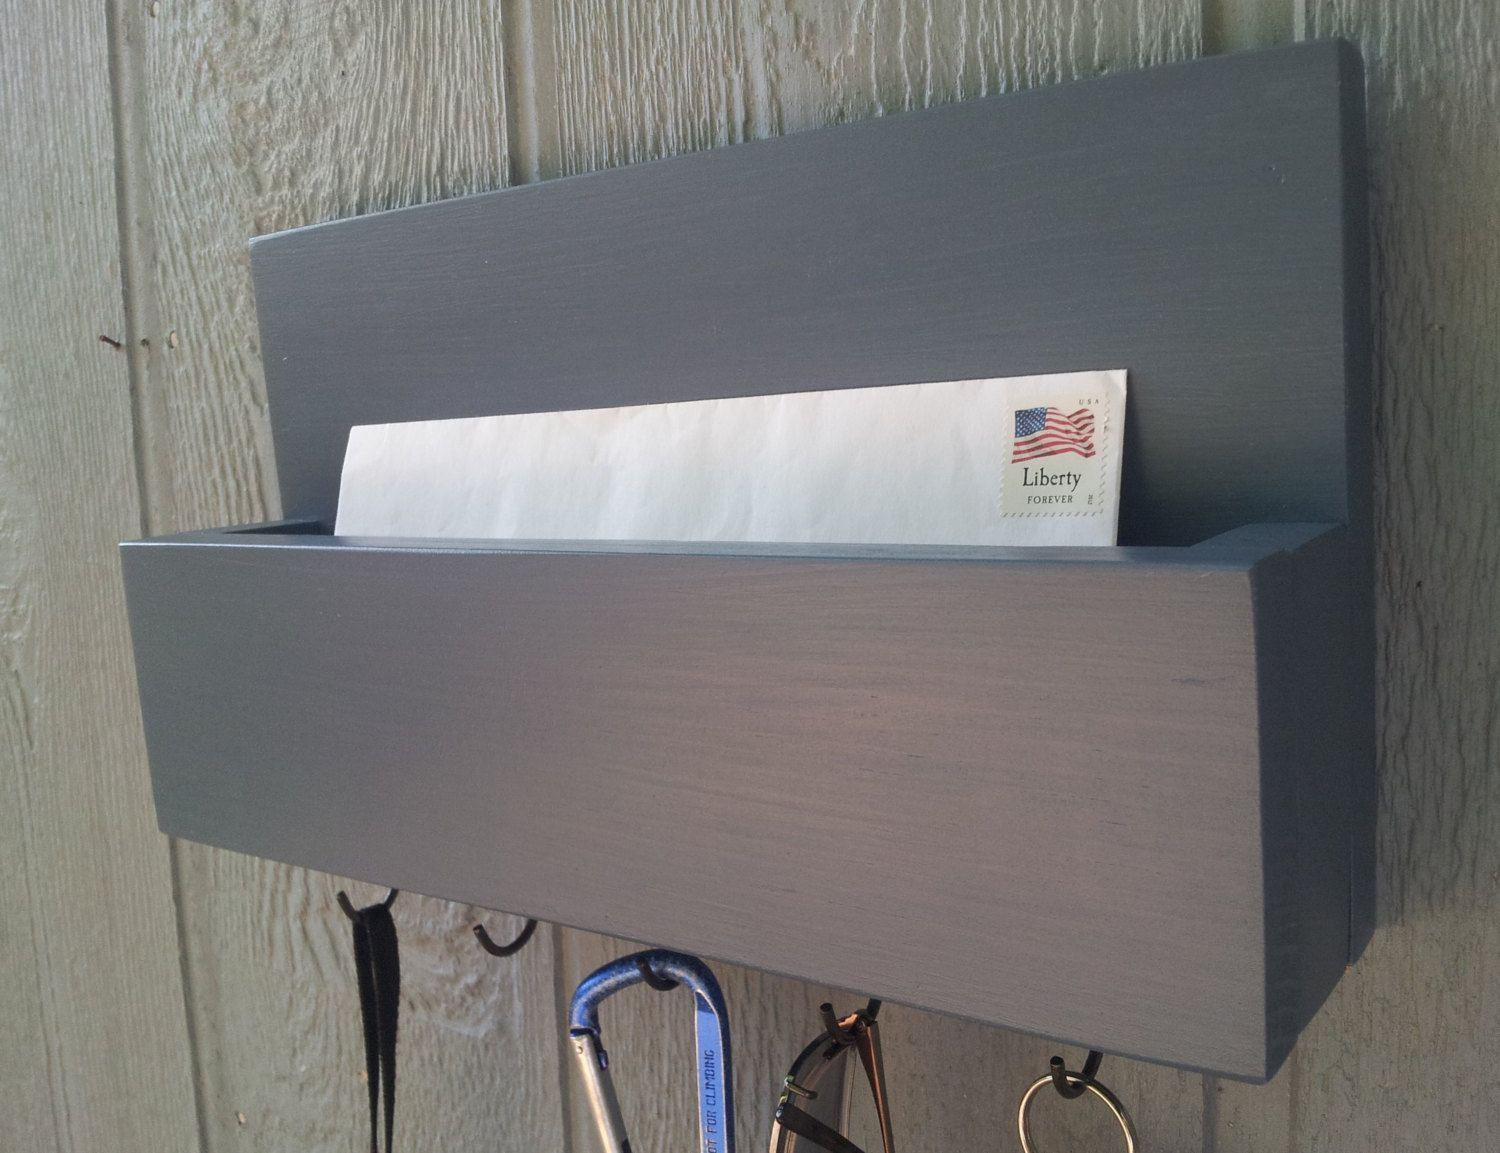 Mail and Key Rack / Mail Organizer / Mail and Key Holder / Key Hooks / Painted - Windsor Haze / Blue by CedarOaks on Etsy https://www.etsy.com/listing/164783677/mail-and-key-rack-mail-organizer-mail